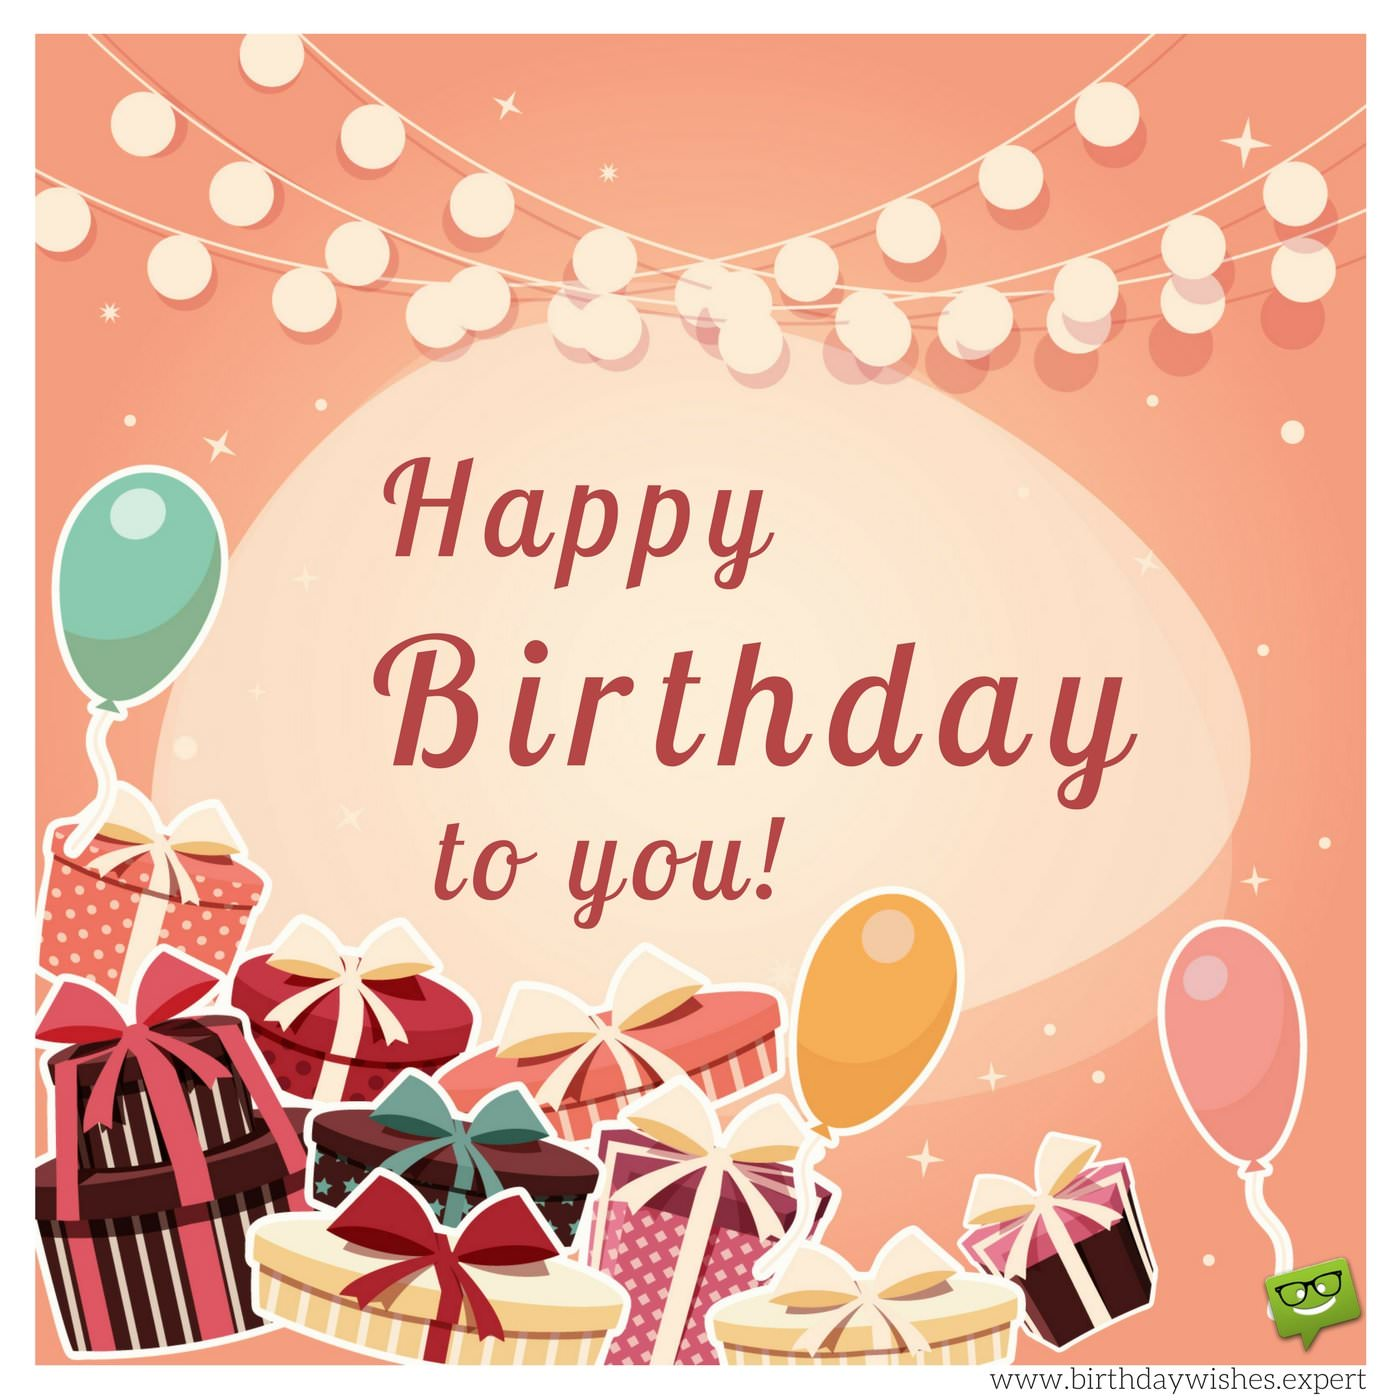 Happy Birthday Wishes For Your Facebook Friends How To Wish Happy Birthday On